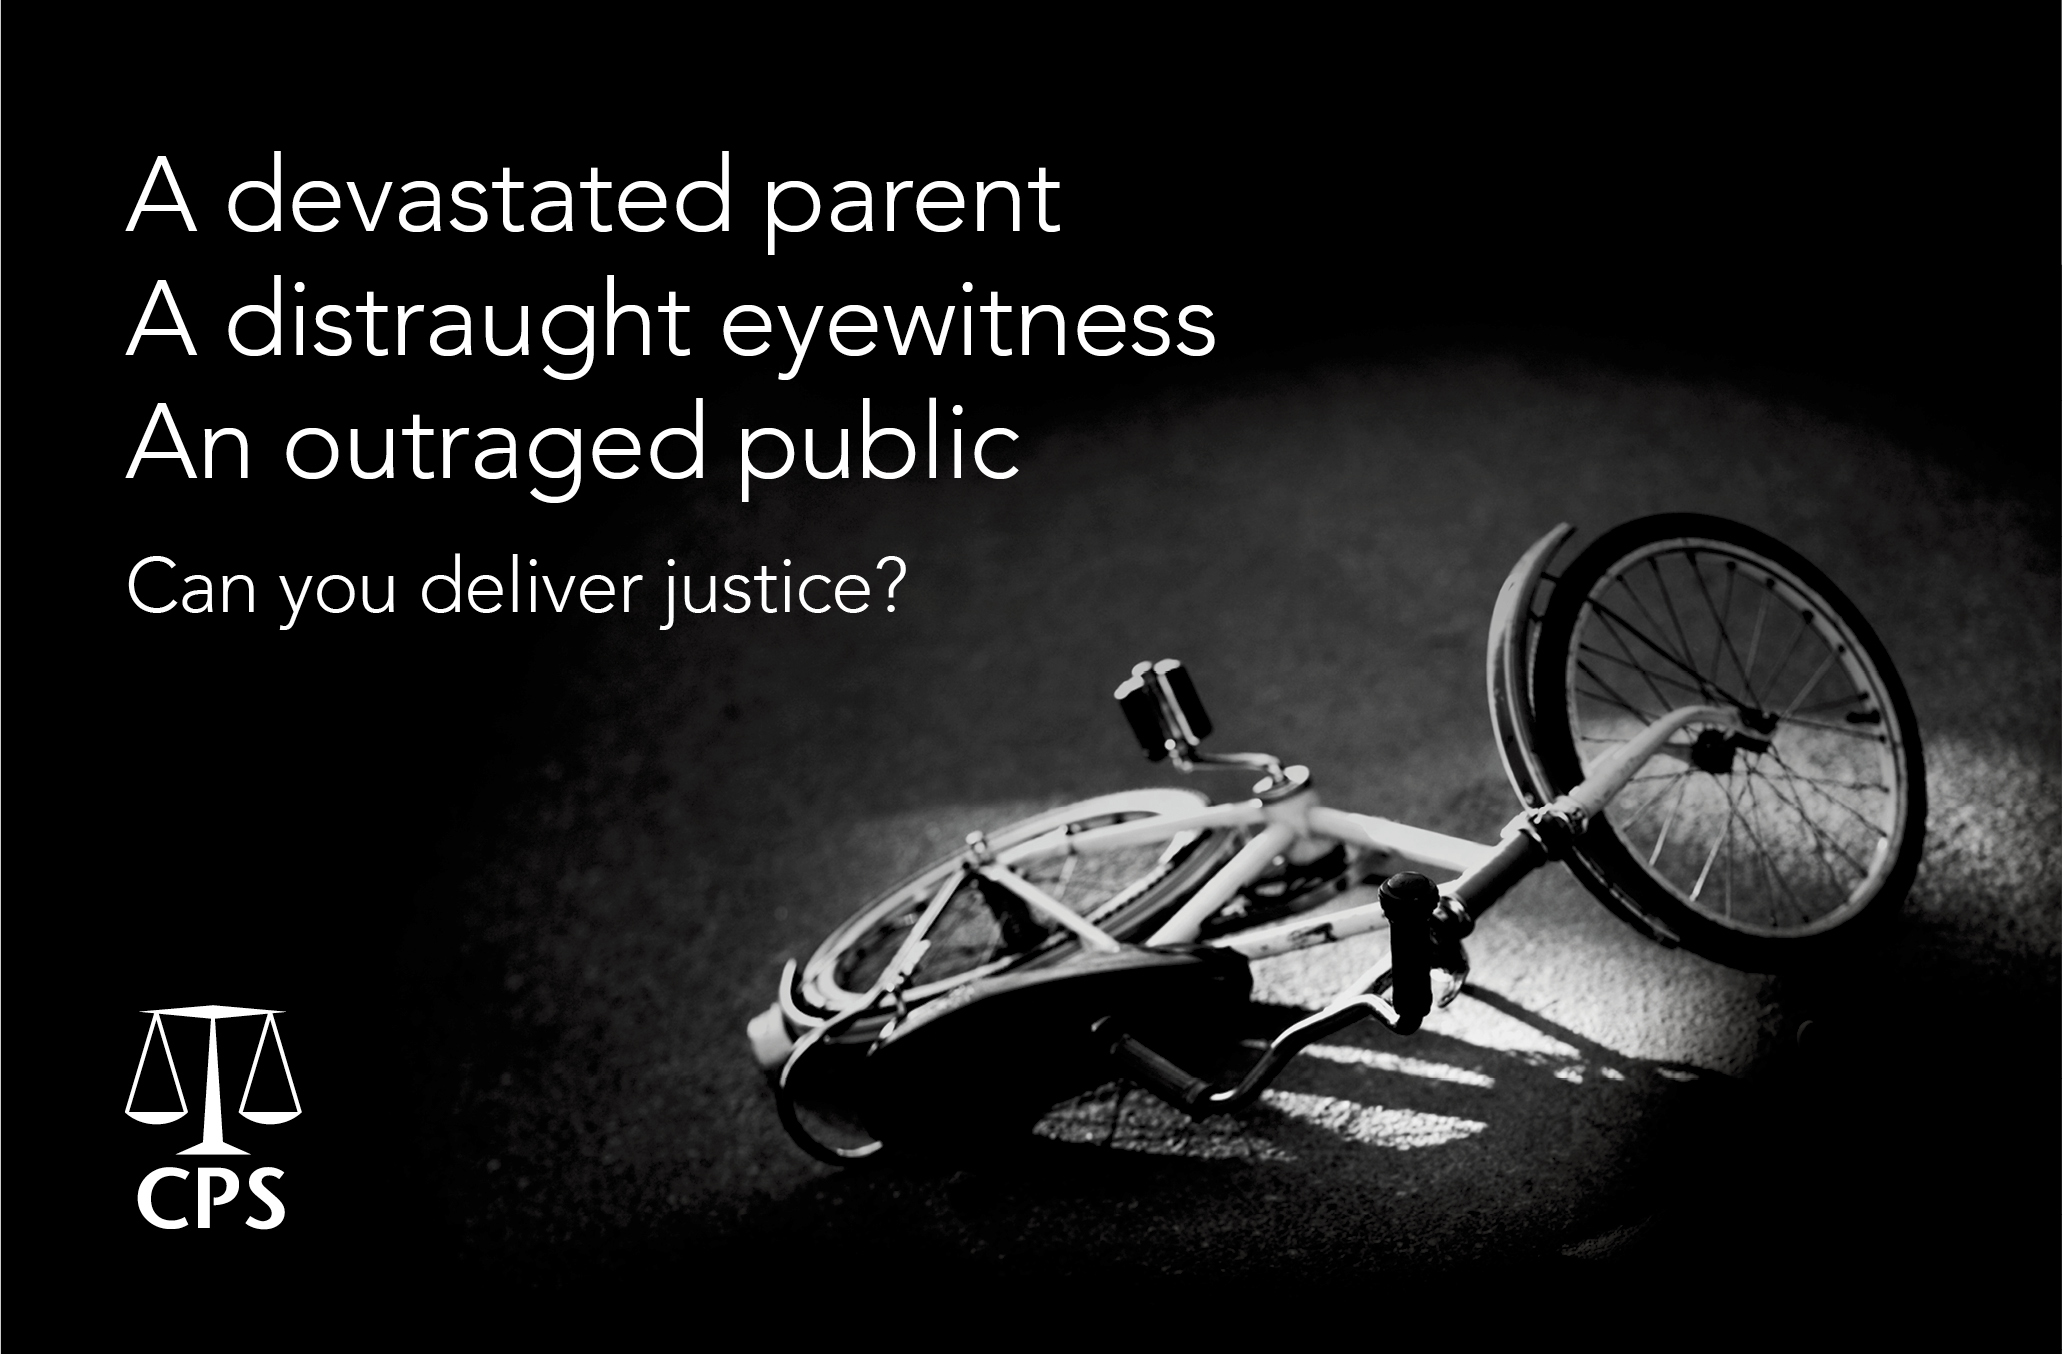 CPS - Can you deliver justice? campaign (bike)